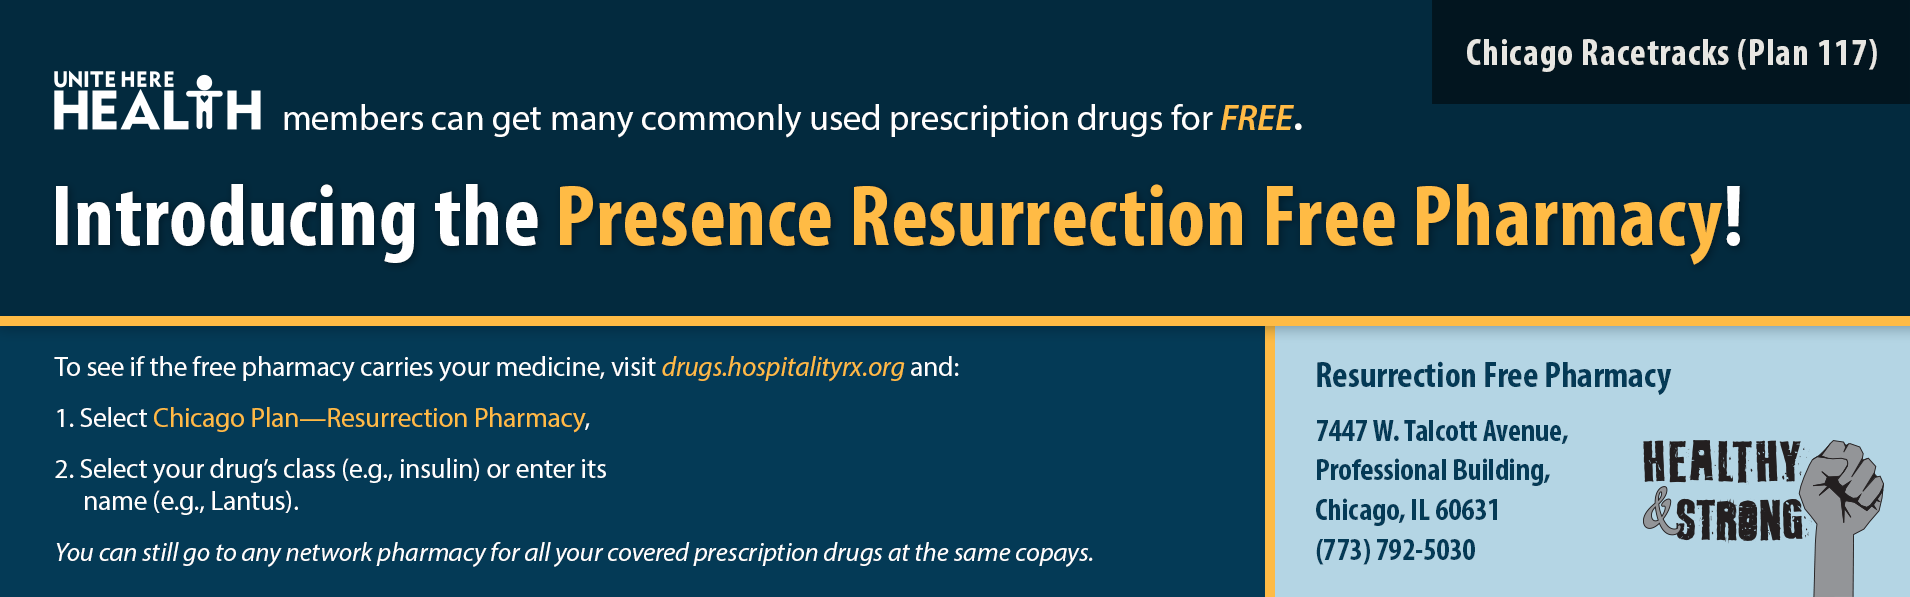 117-Banner-FreePharmacy.png